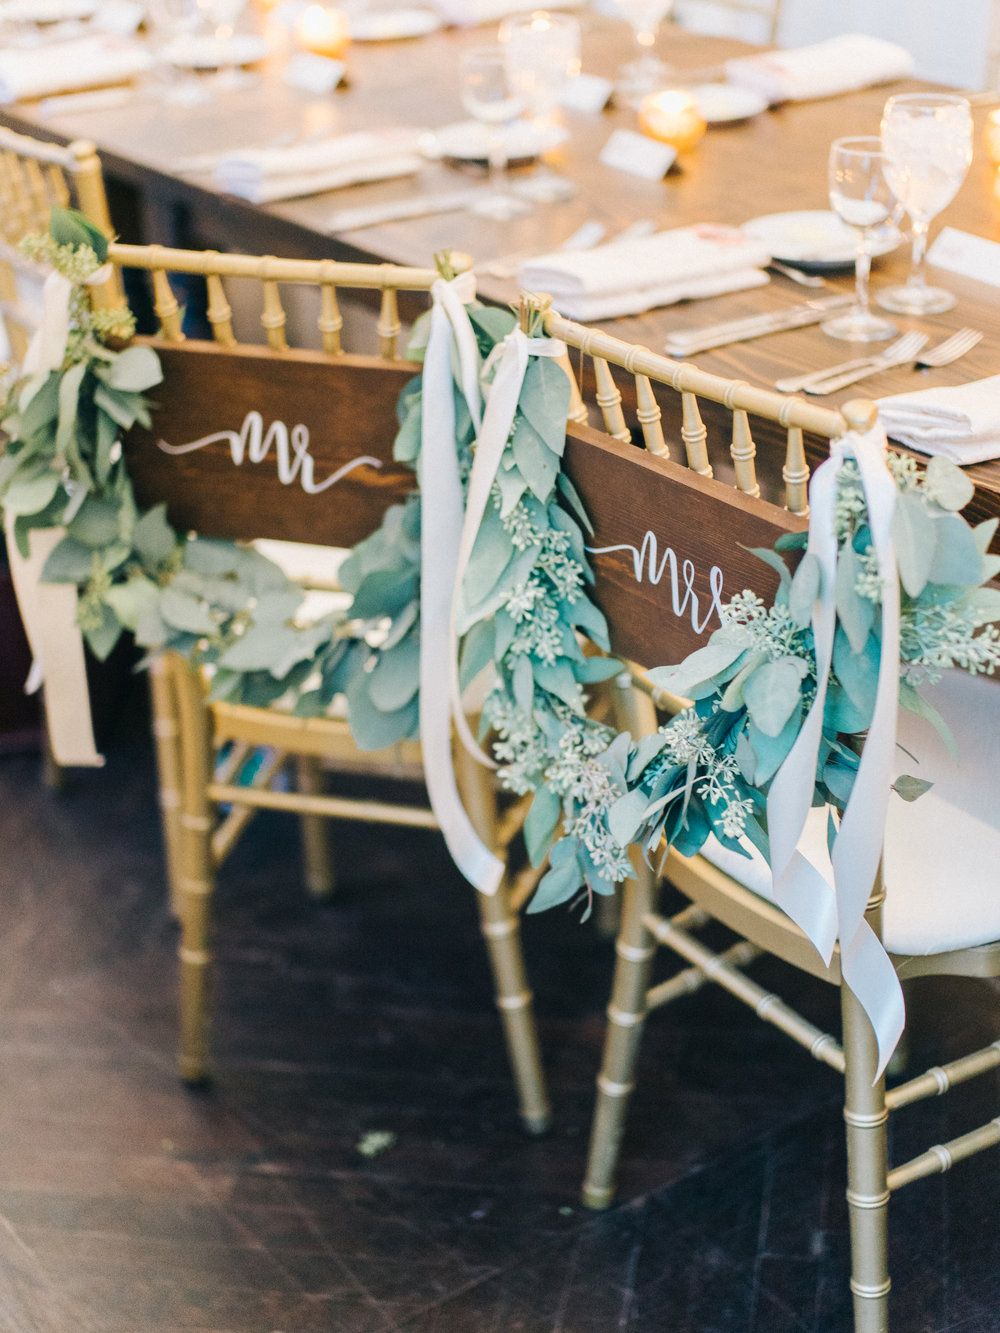 Head Table Details